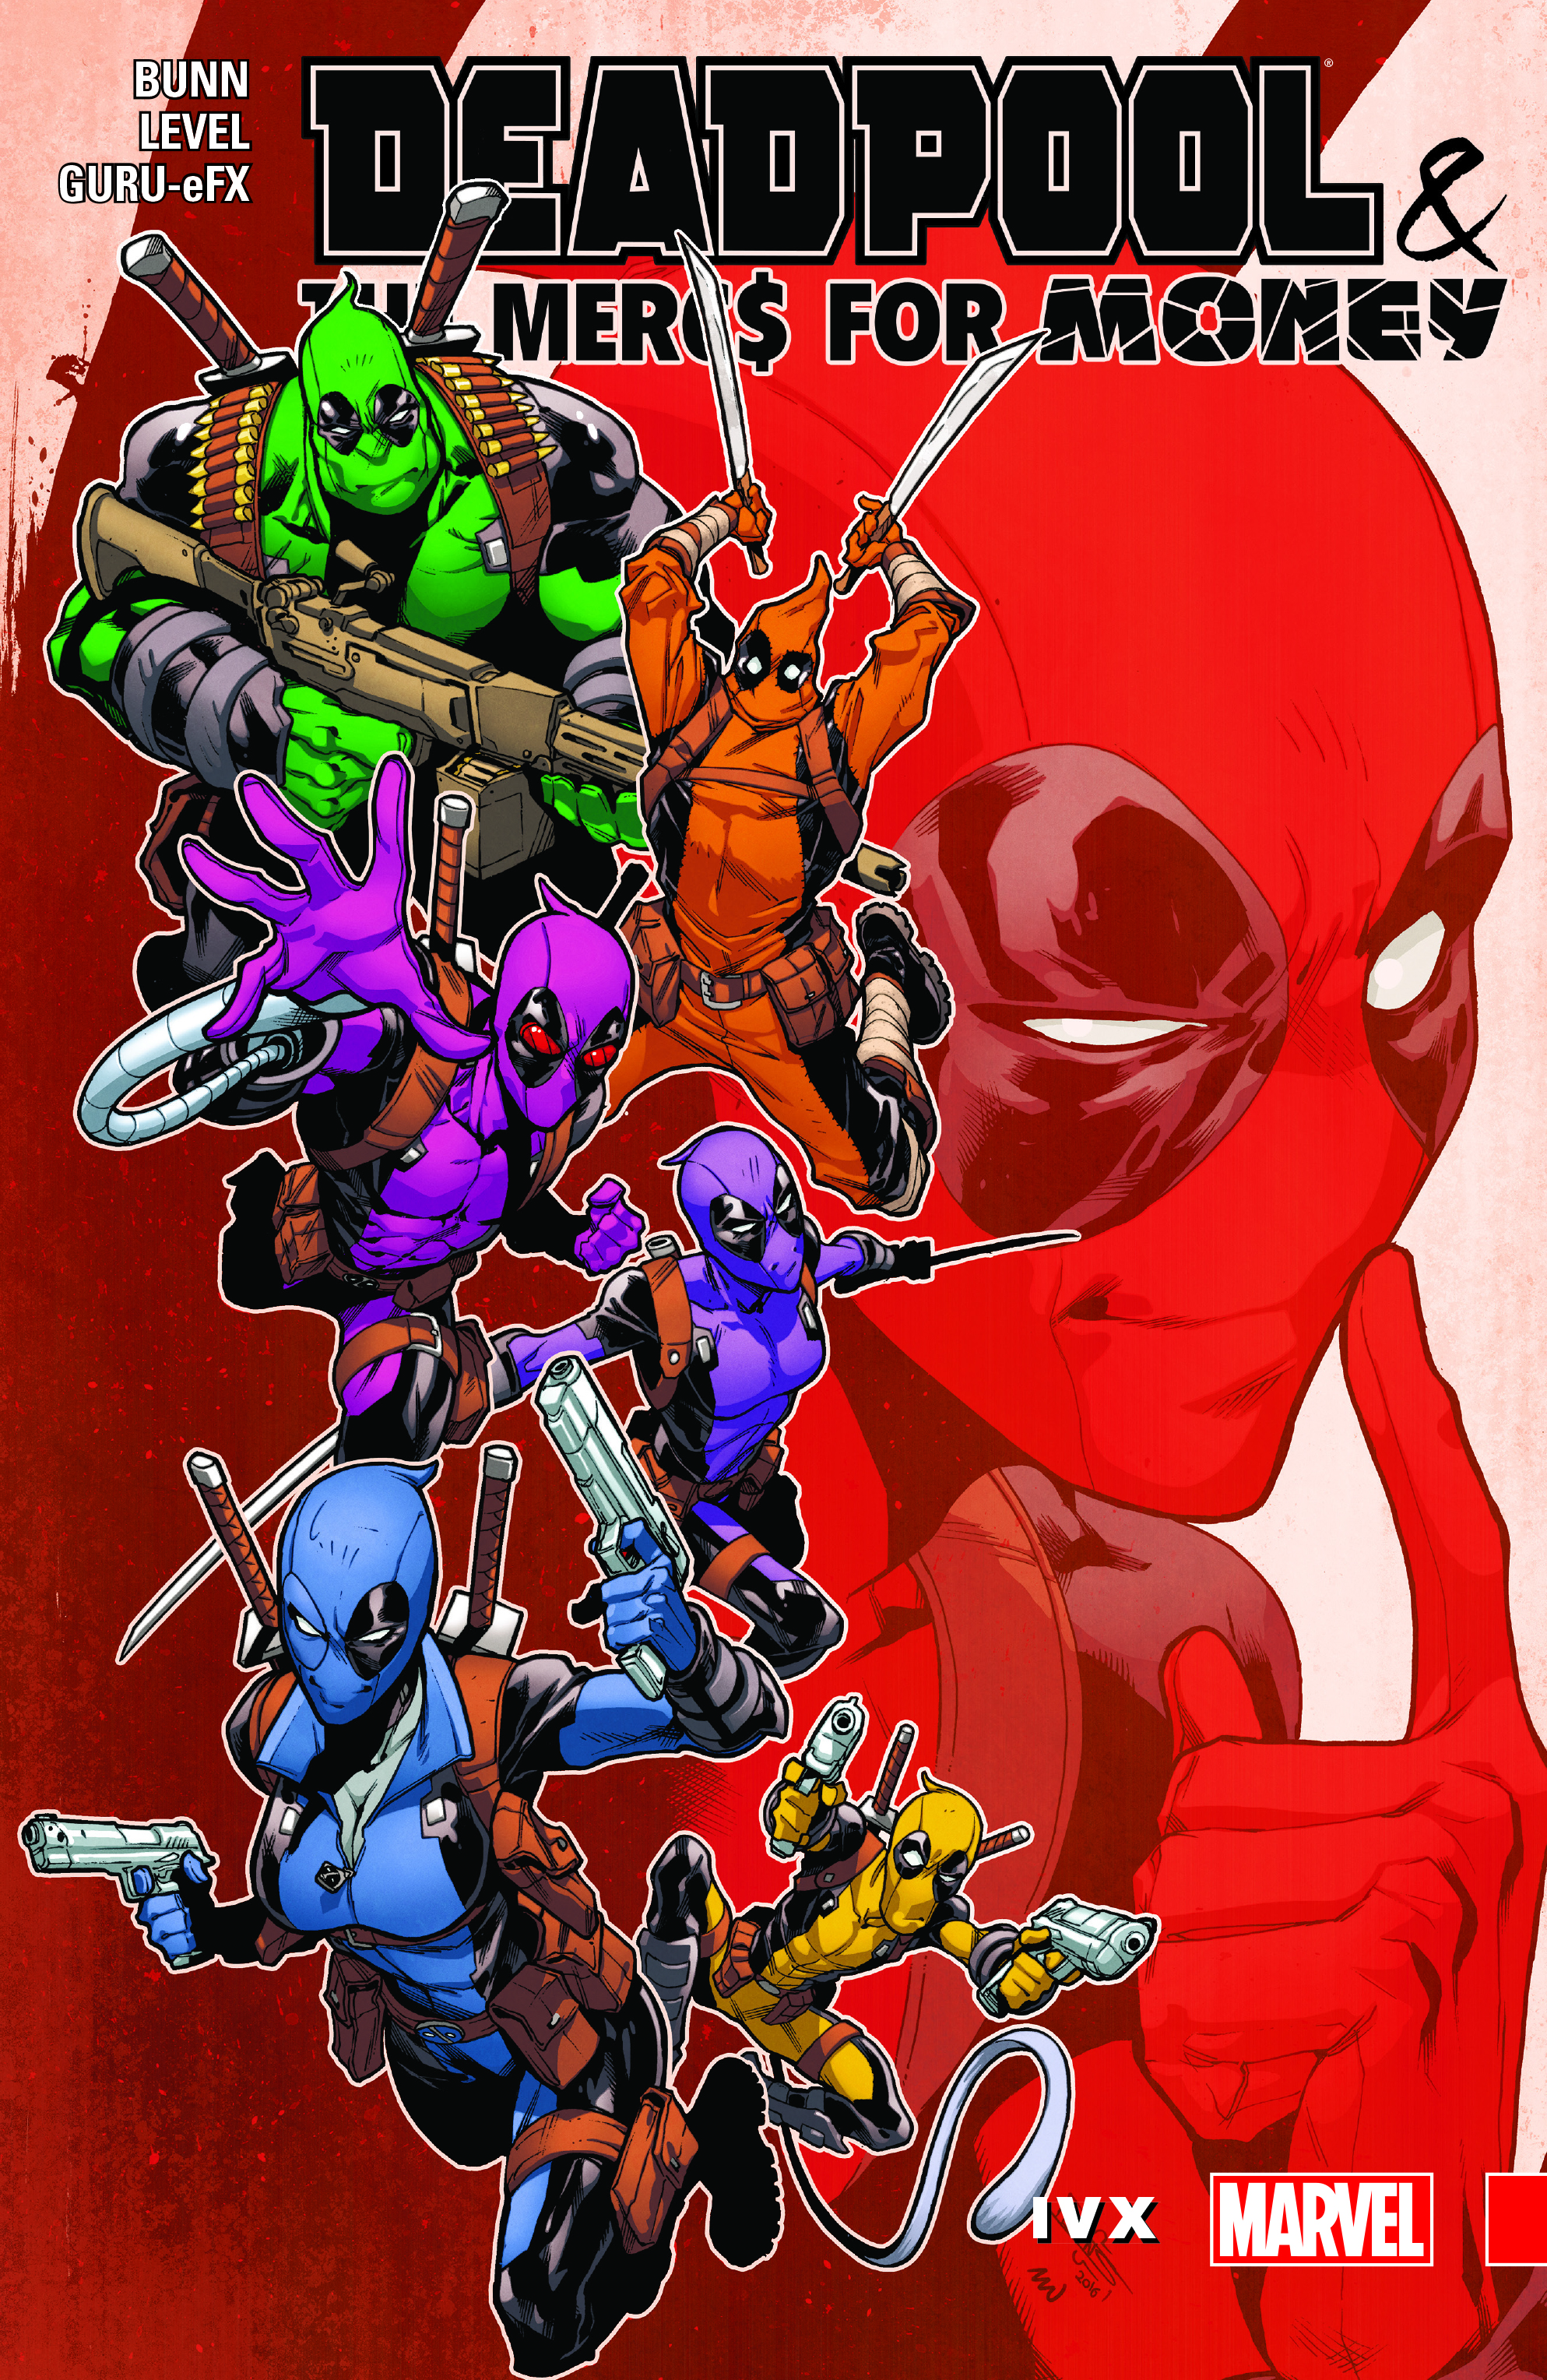 Deadpool & the Mercs for Money Vol. 2: IvX (Trade Paperback)